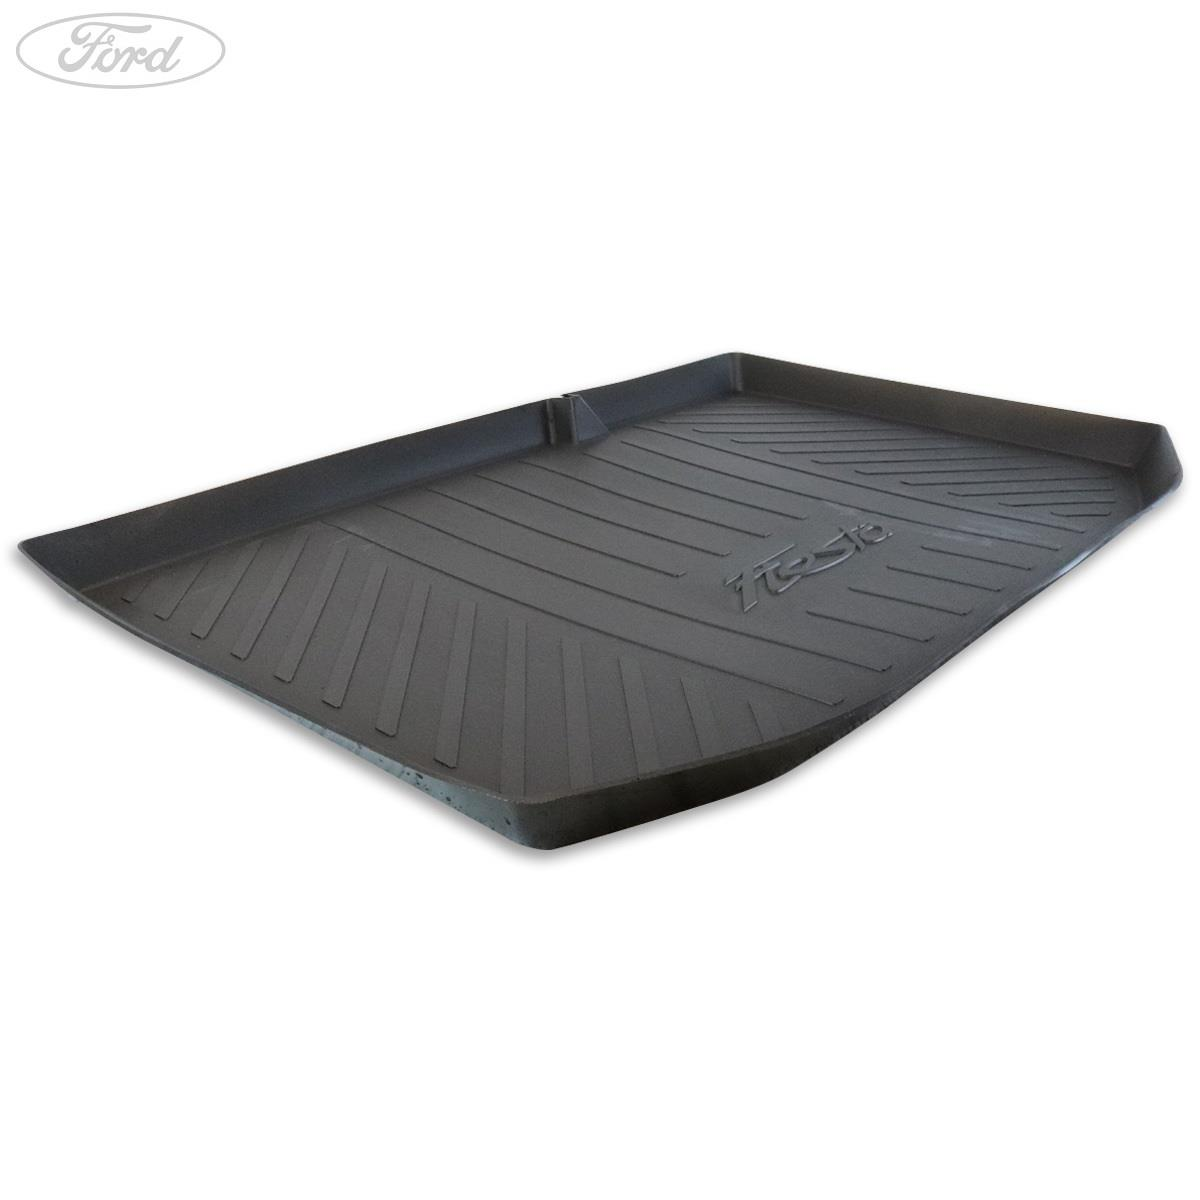 Ford Fiesta Mk7 2009-Now New Heavy Duty Rubber Fully Tailored Car Boot Mat Liner